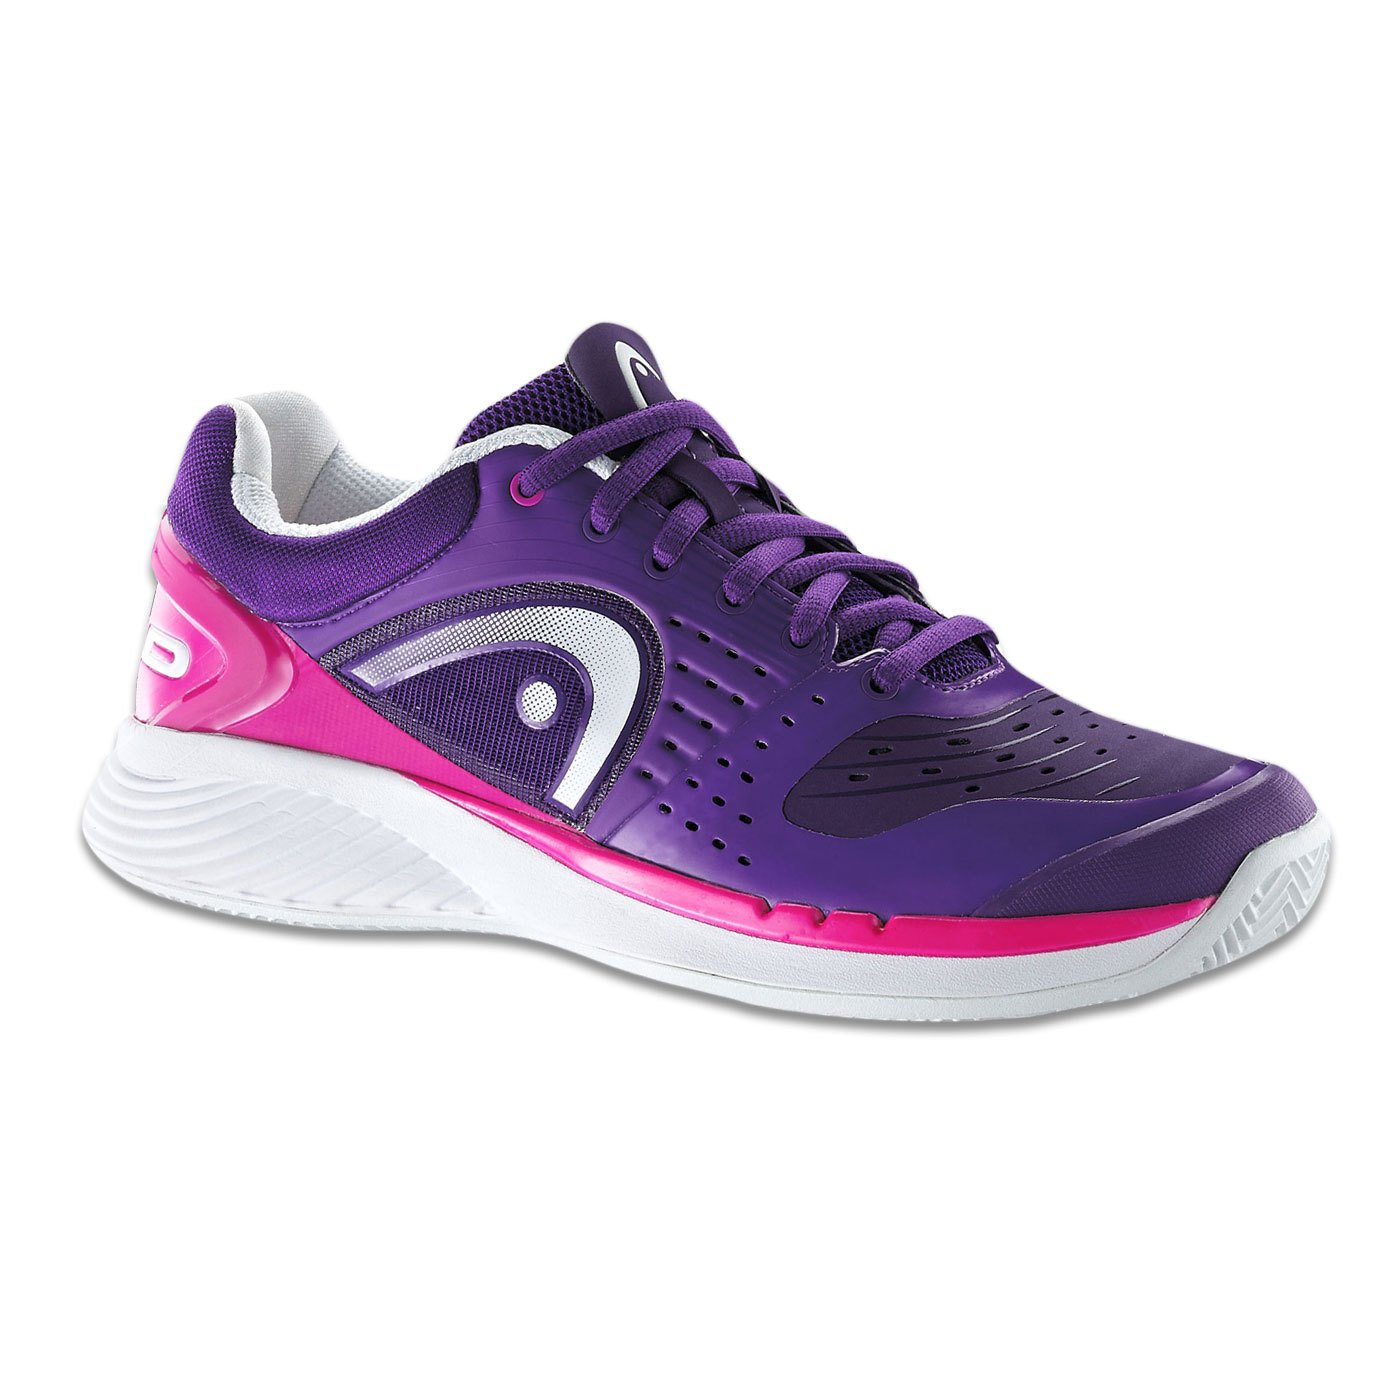 Zapatillas De Padel Head Sprint Pro Clay: Amazon.es: Deportes y aire libre